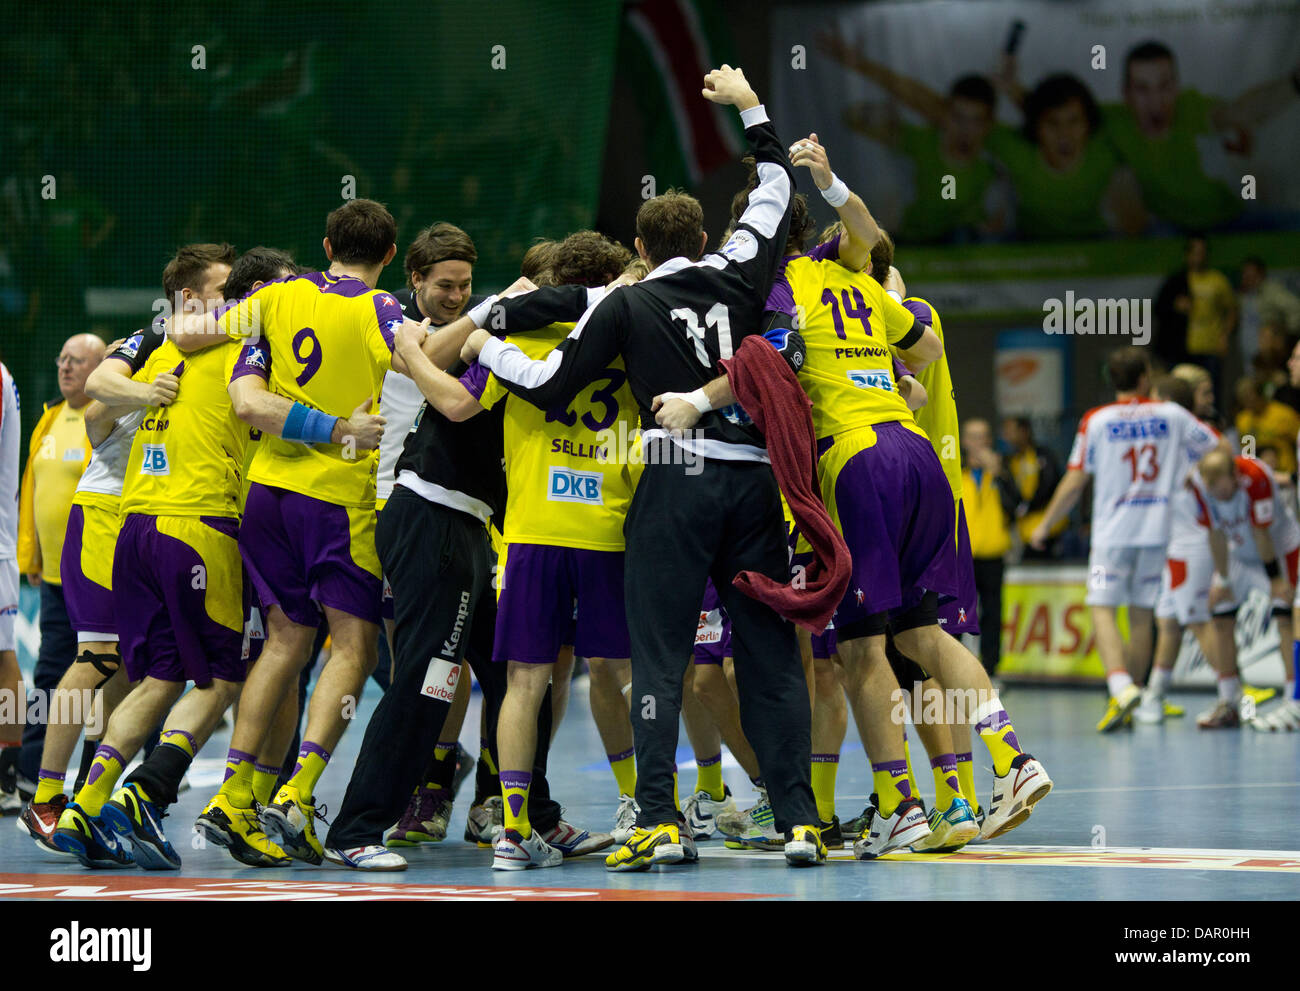 Berlin's team players cheer after winning the handball match of SC Magdeburg against Fuechse Berlin by 29-27 - Stock Image